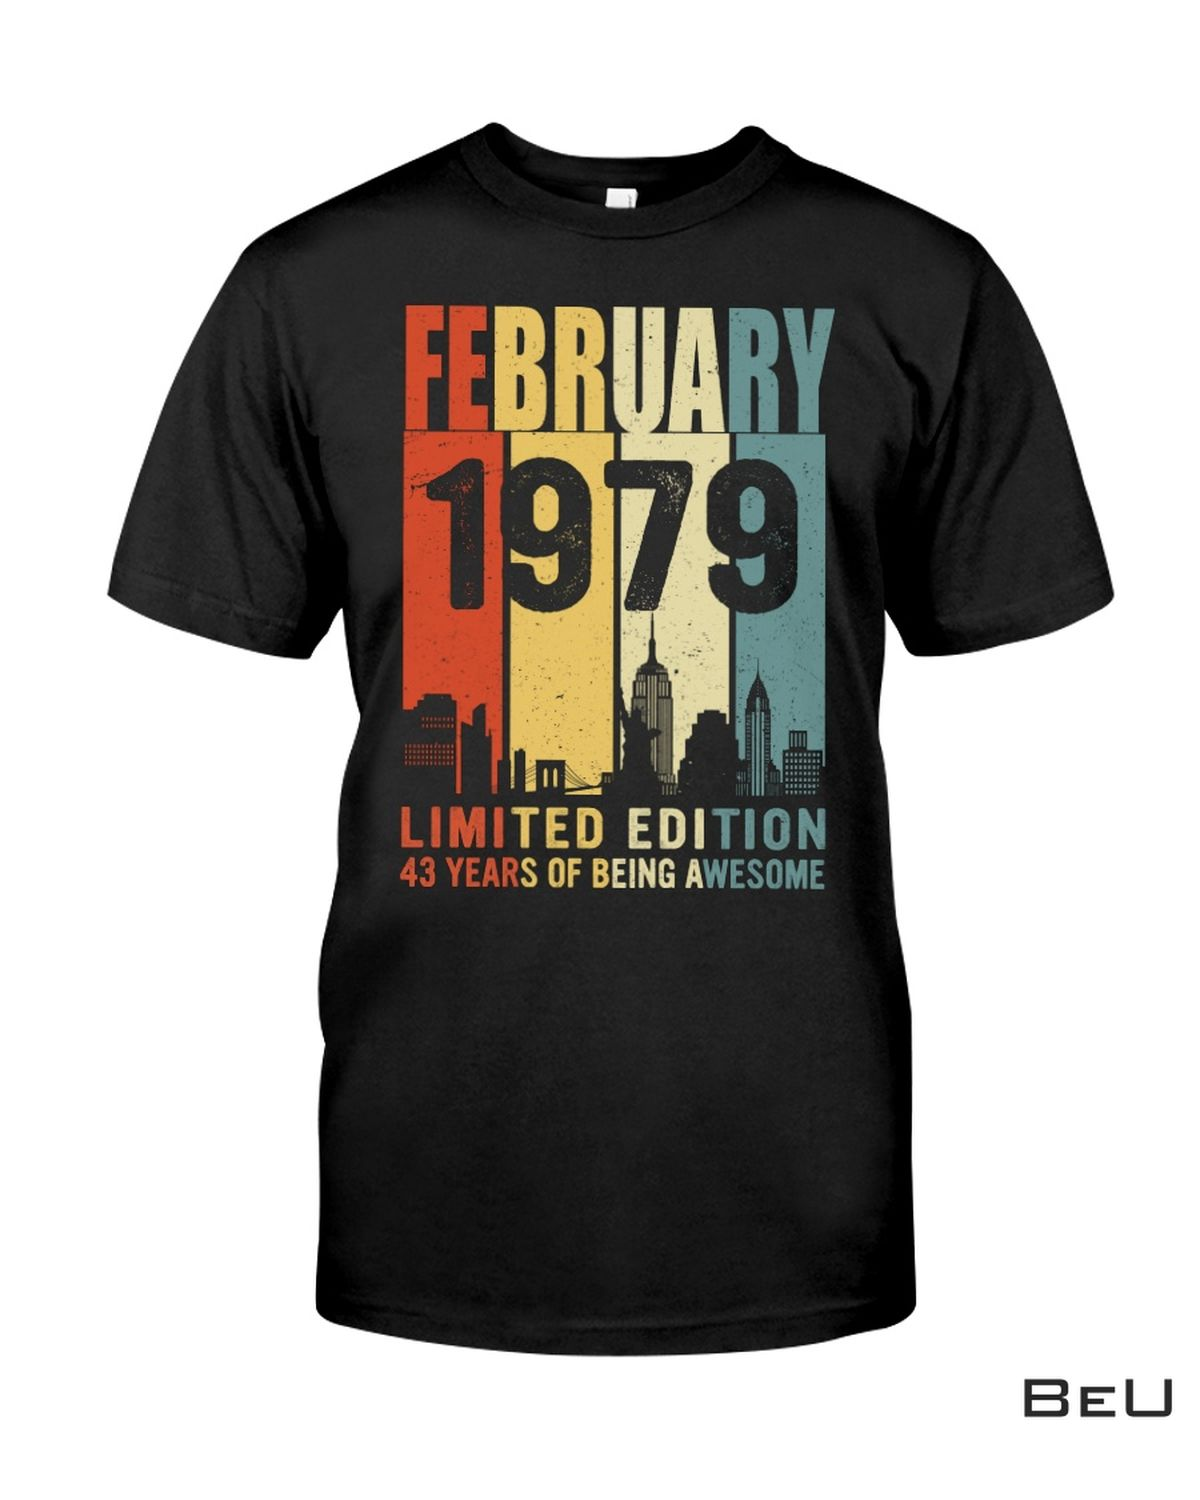 February 1979 Limited Edition Shirt, hoodie